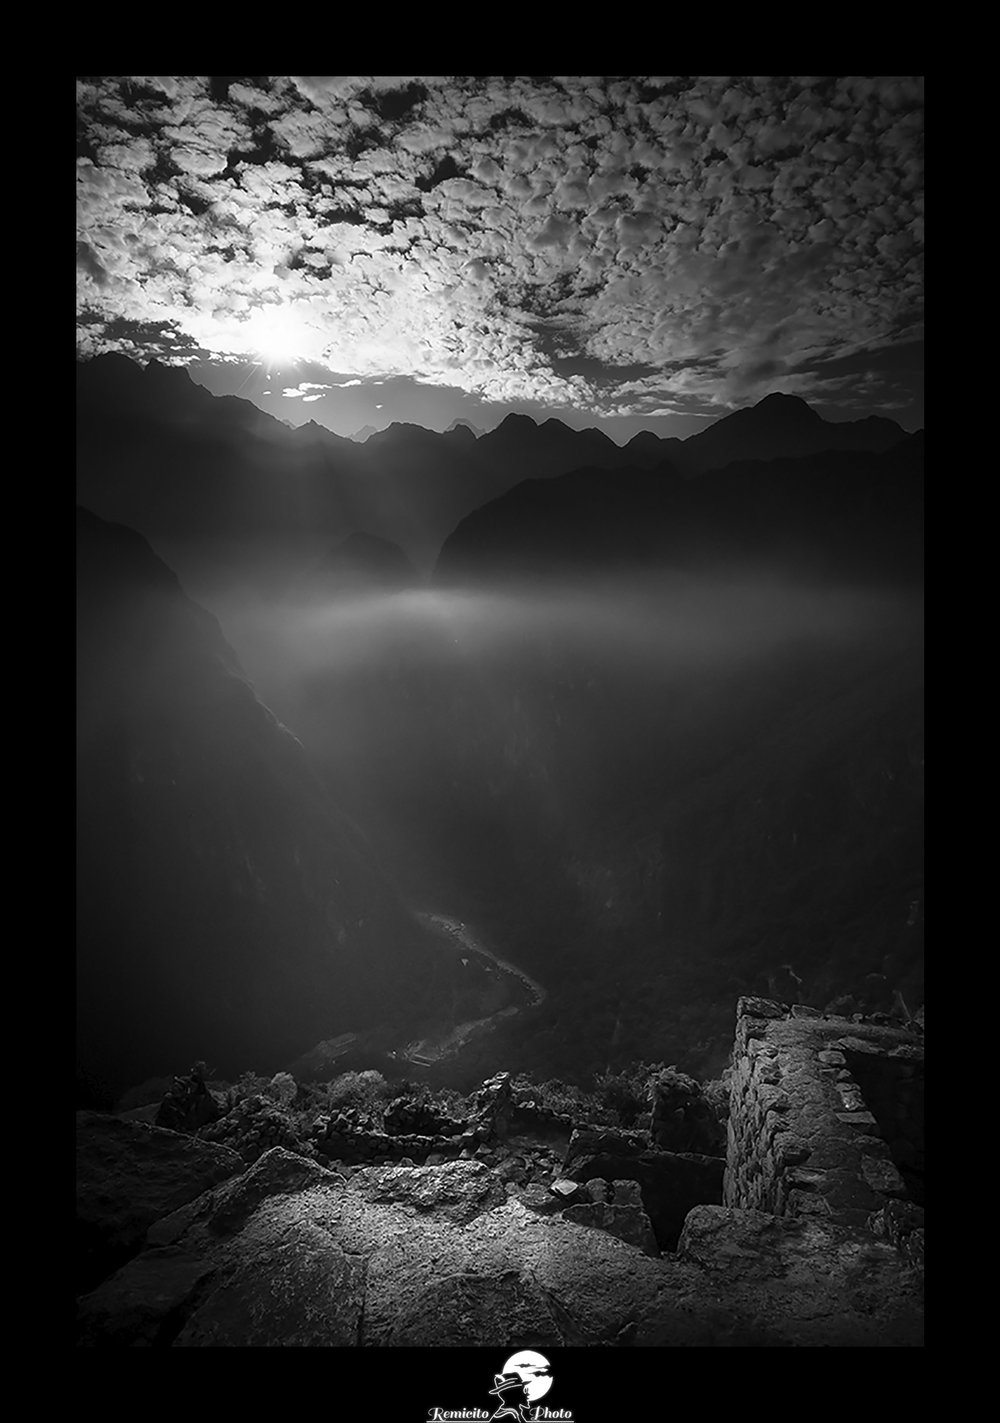 Remicito photo, remicito rémi lacombe photographe français, belle photo remicito photographe noir et blanc machu picchu, belle photo lumière machu picchu pérou, idée cadeau belle photo